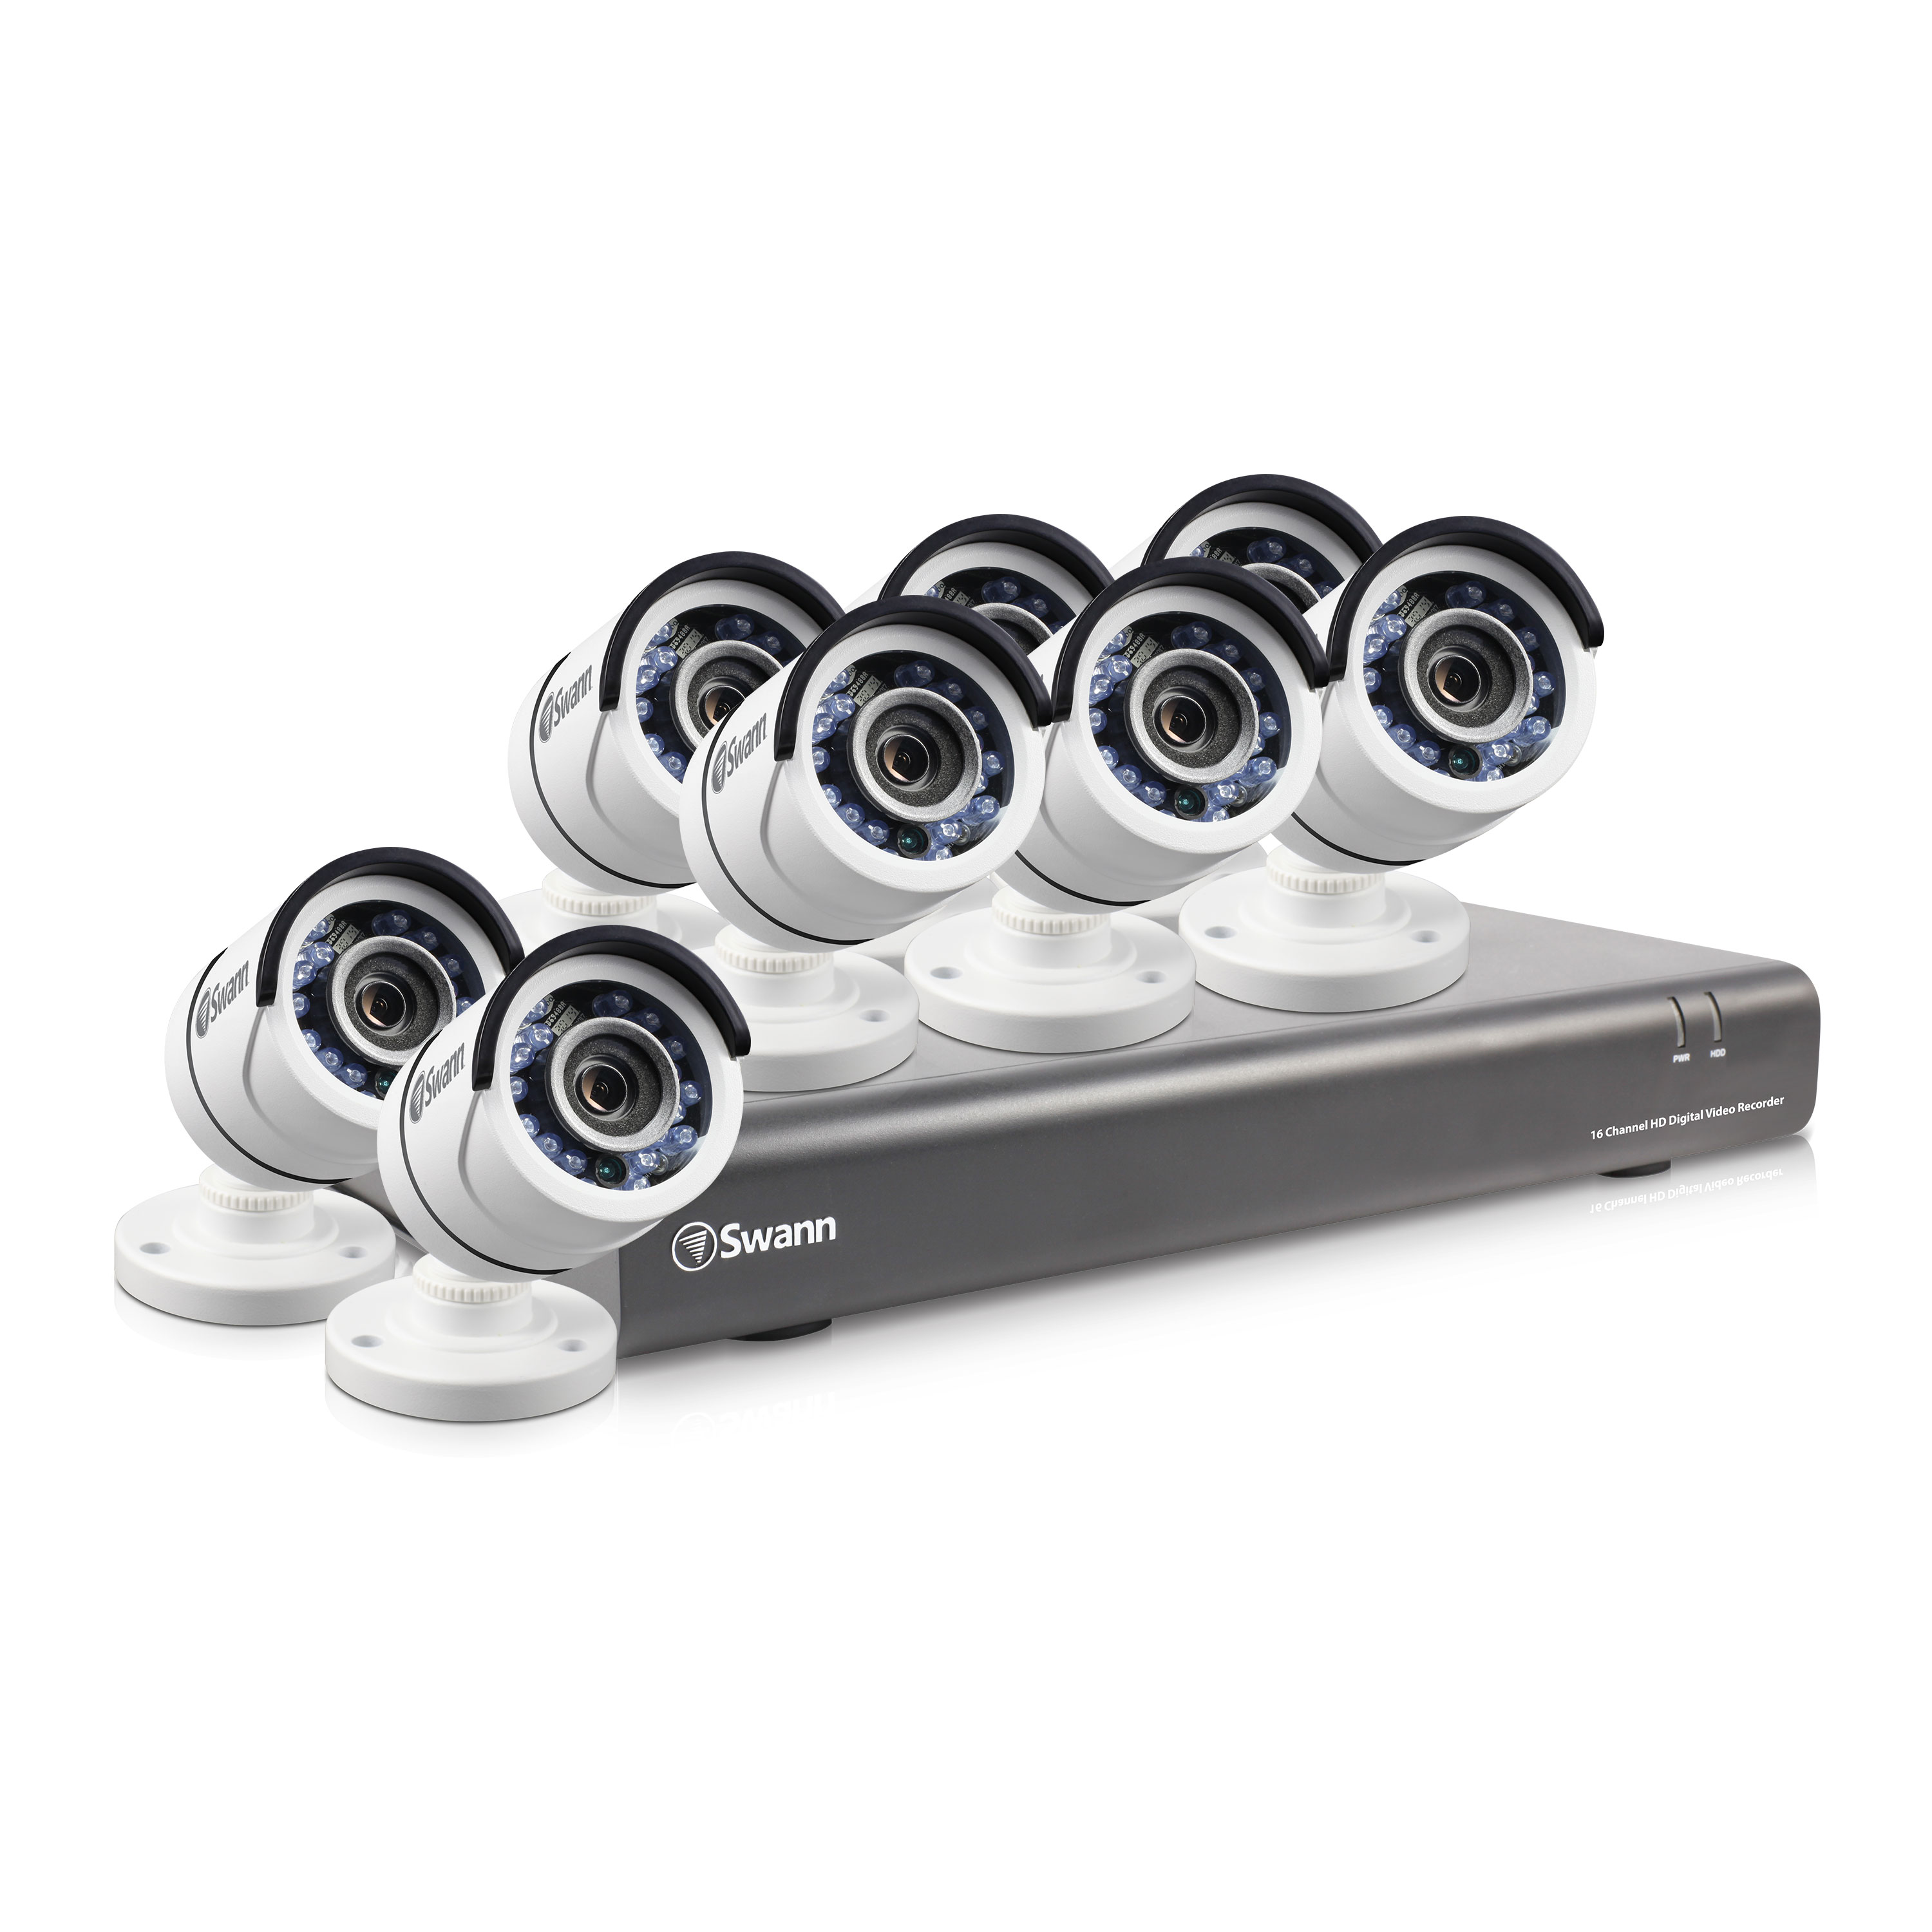 Dvr16 4550 16 Channel 1080p Digital Video Recorder With 8